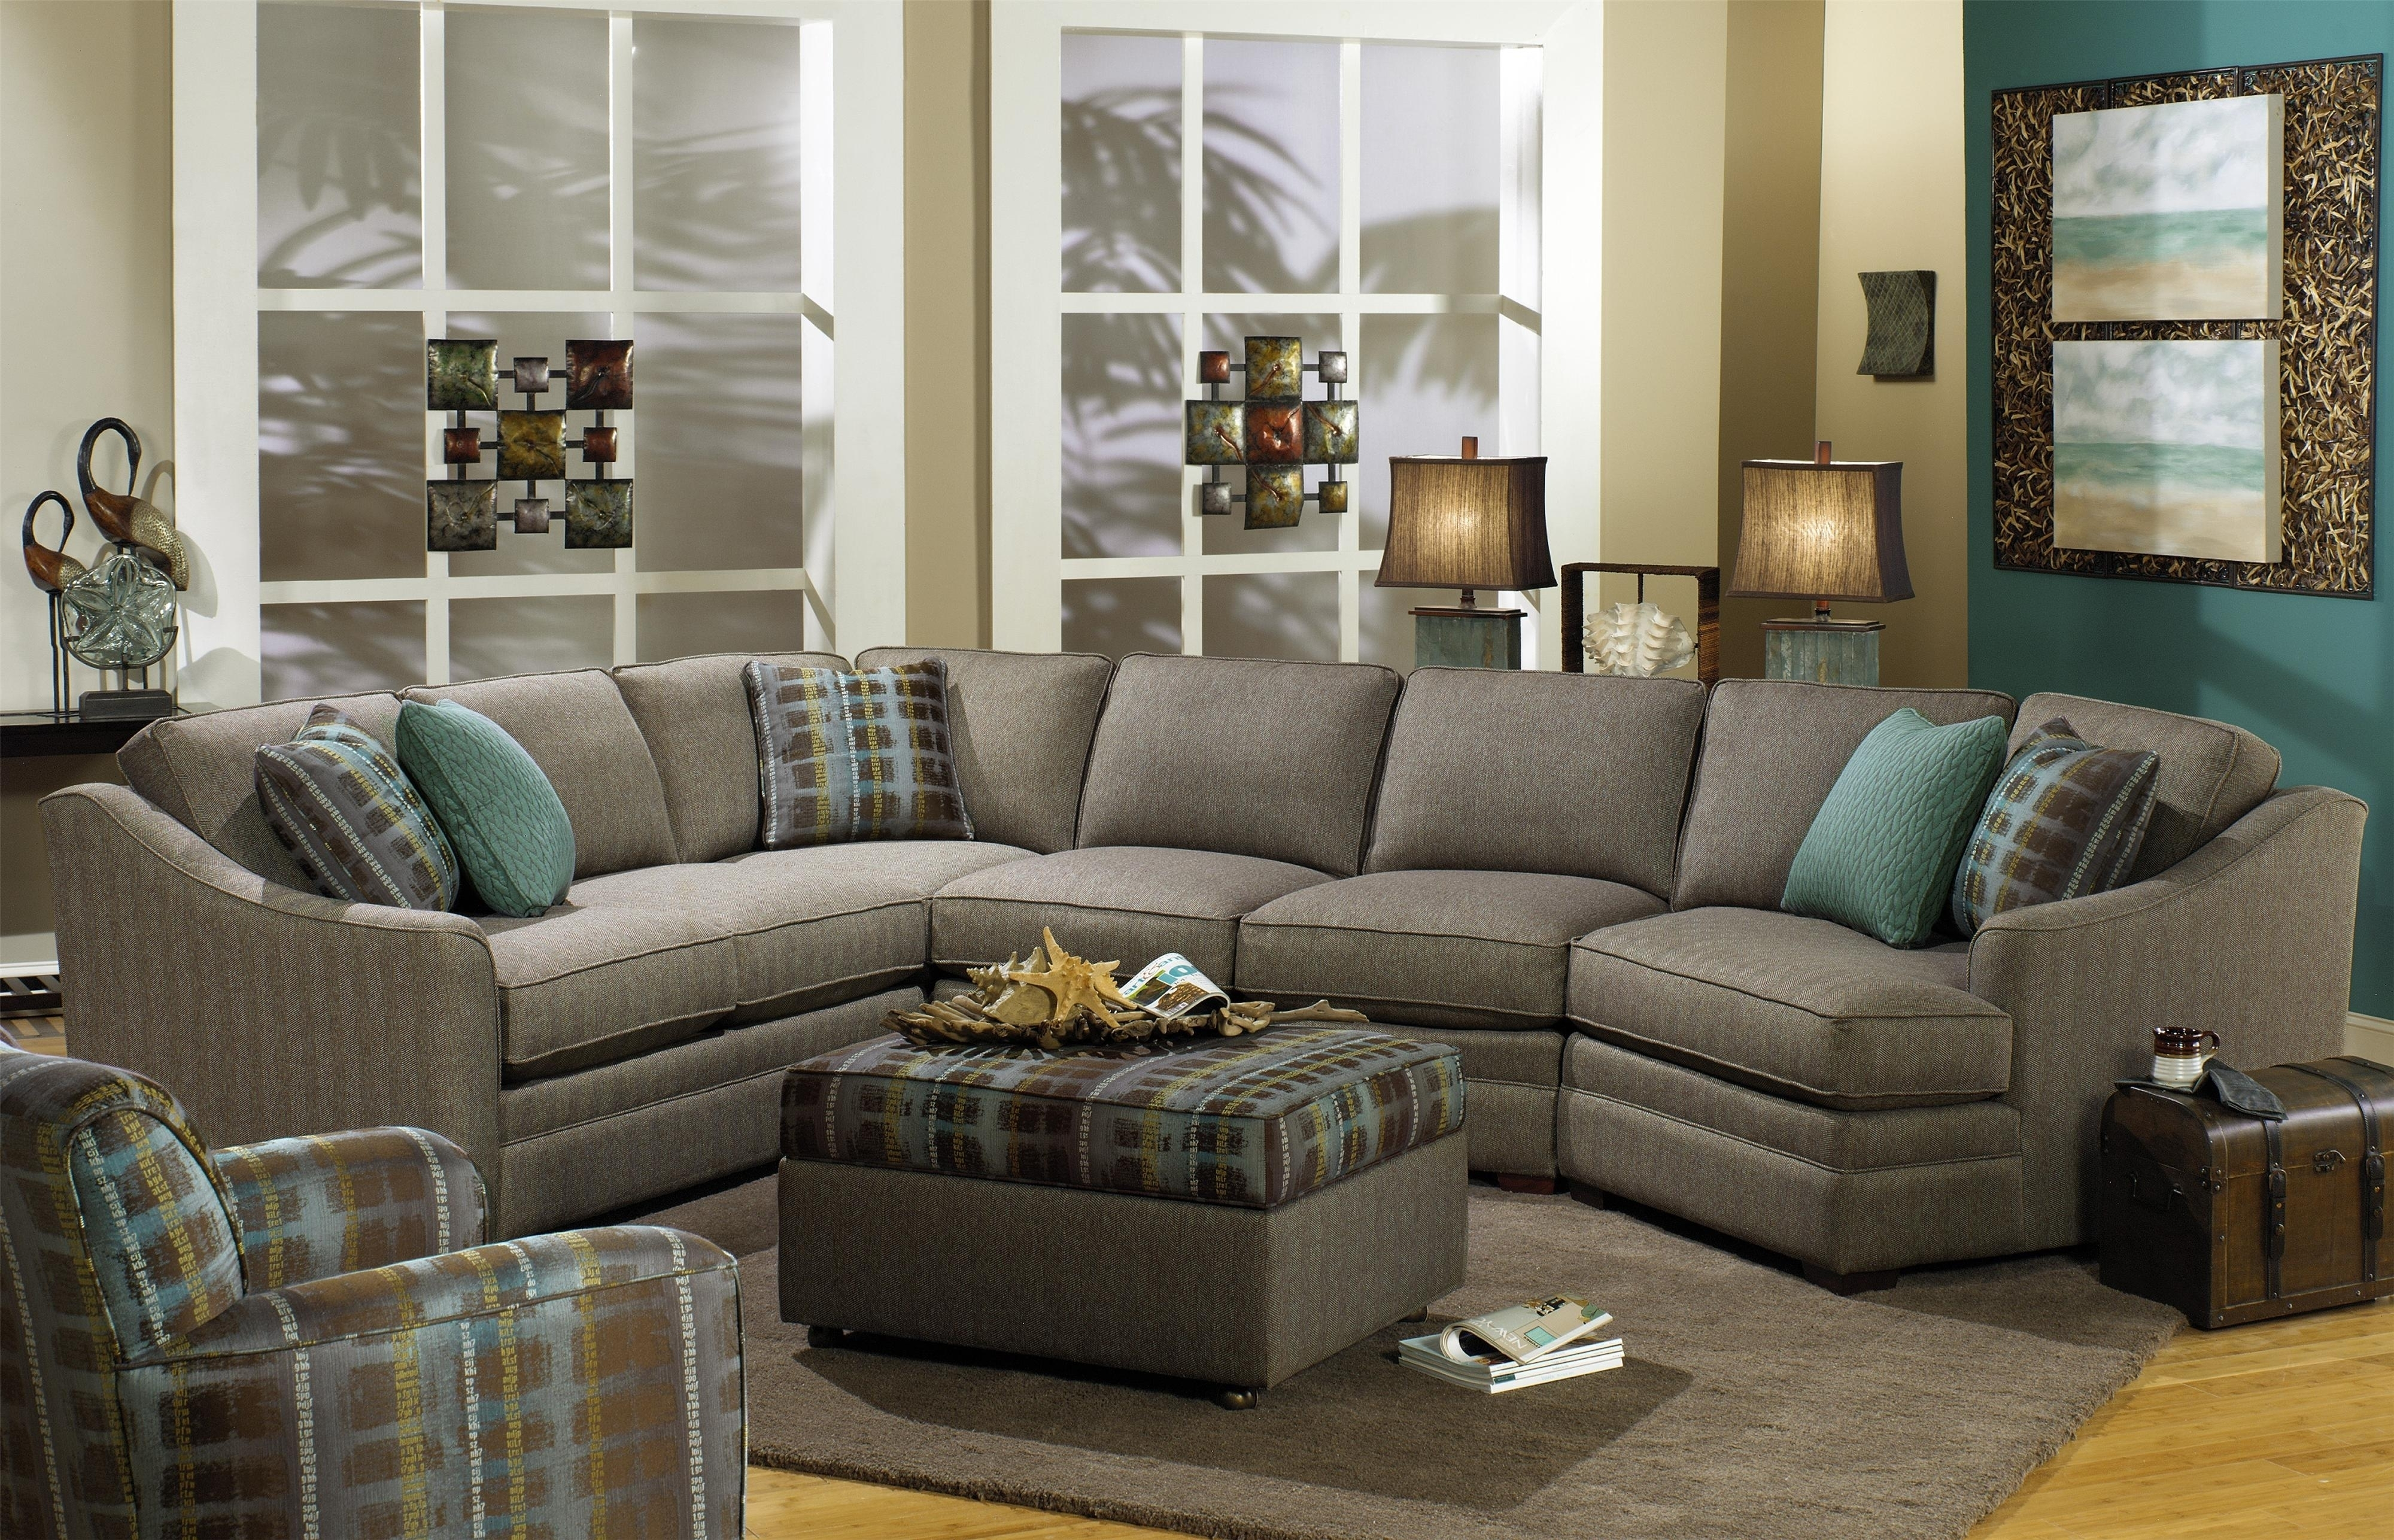 Gallery Craftsman Sectional Sofa – Mediasupload Intended For Craftsman Sectional Sofas (Image 6 of 10)